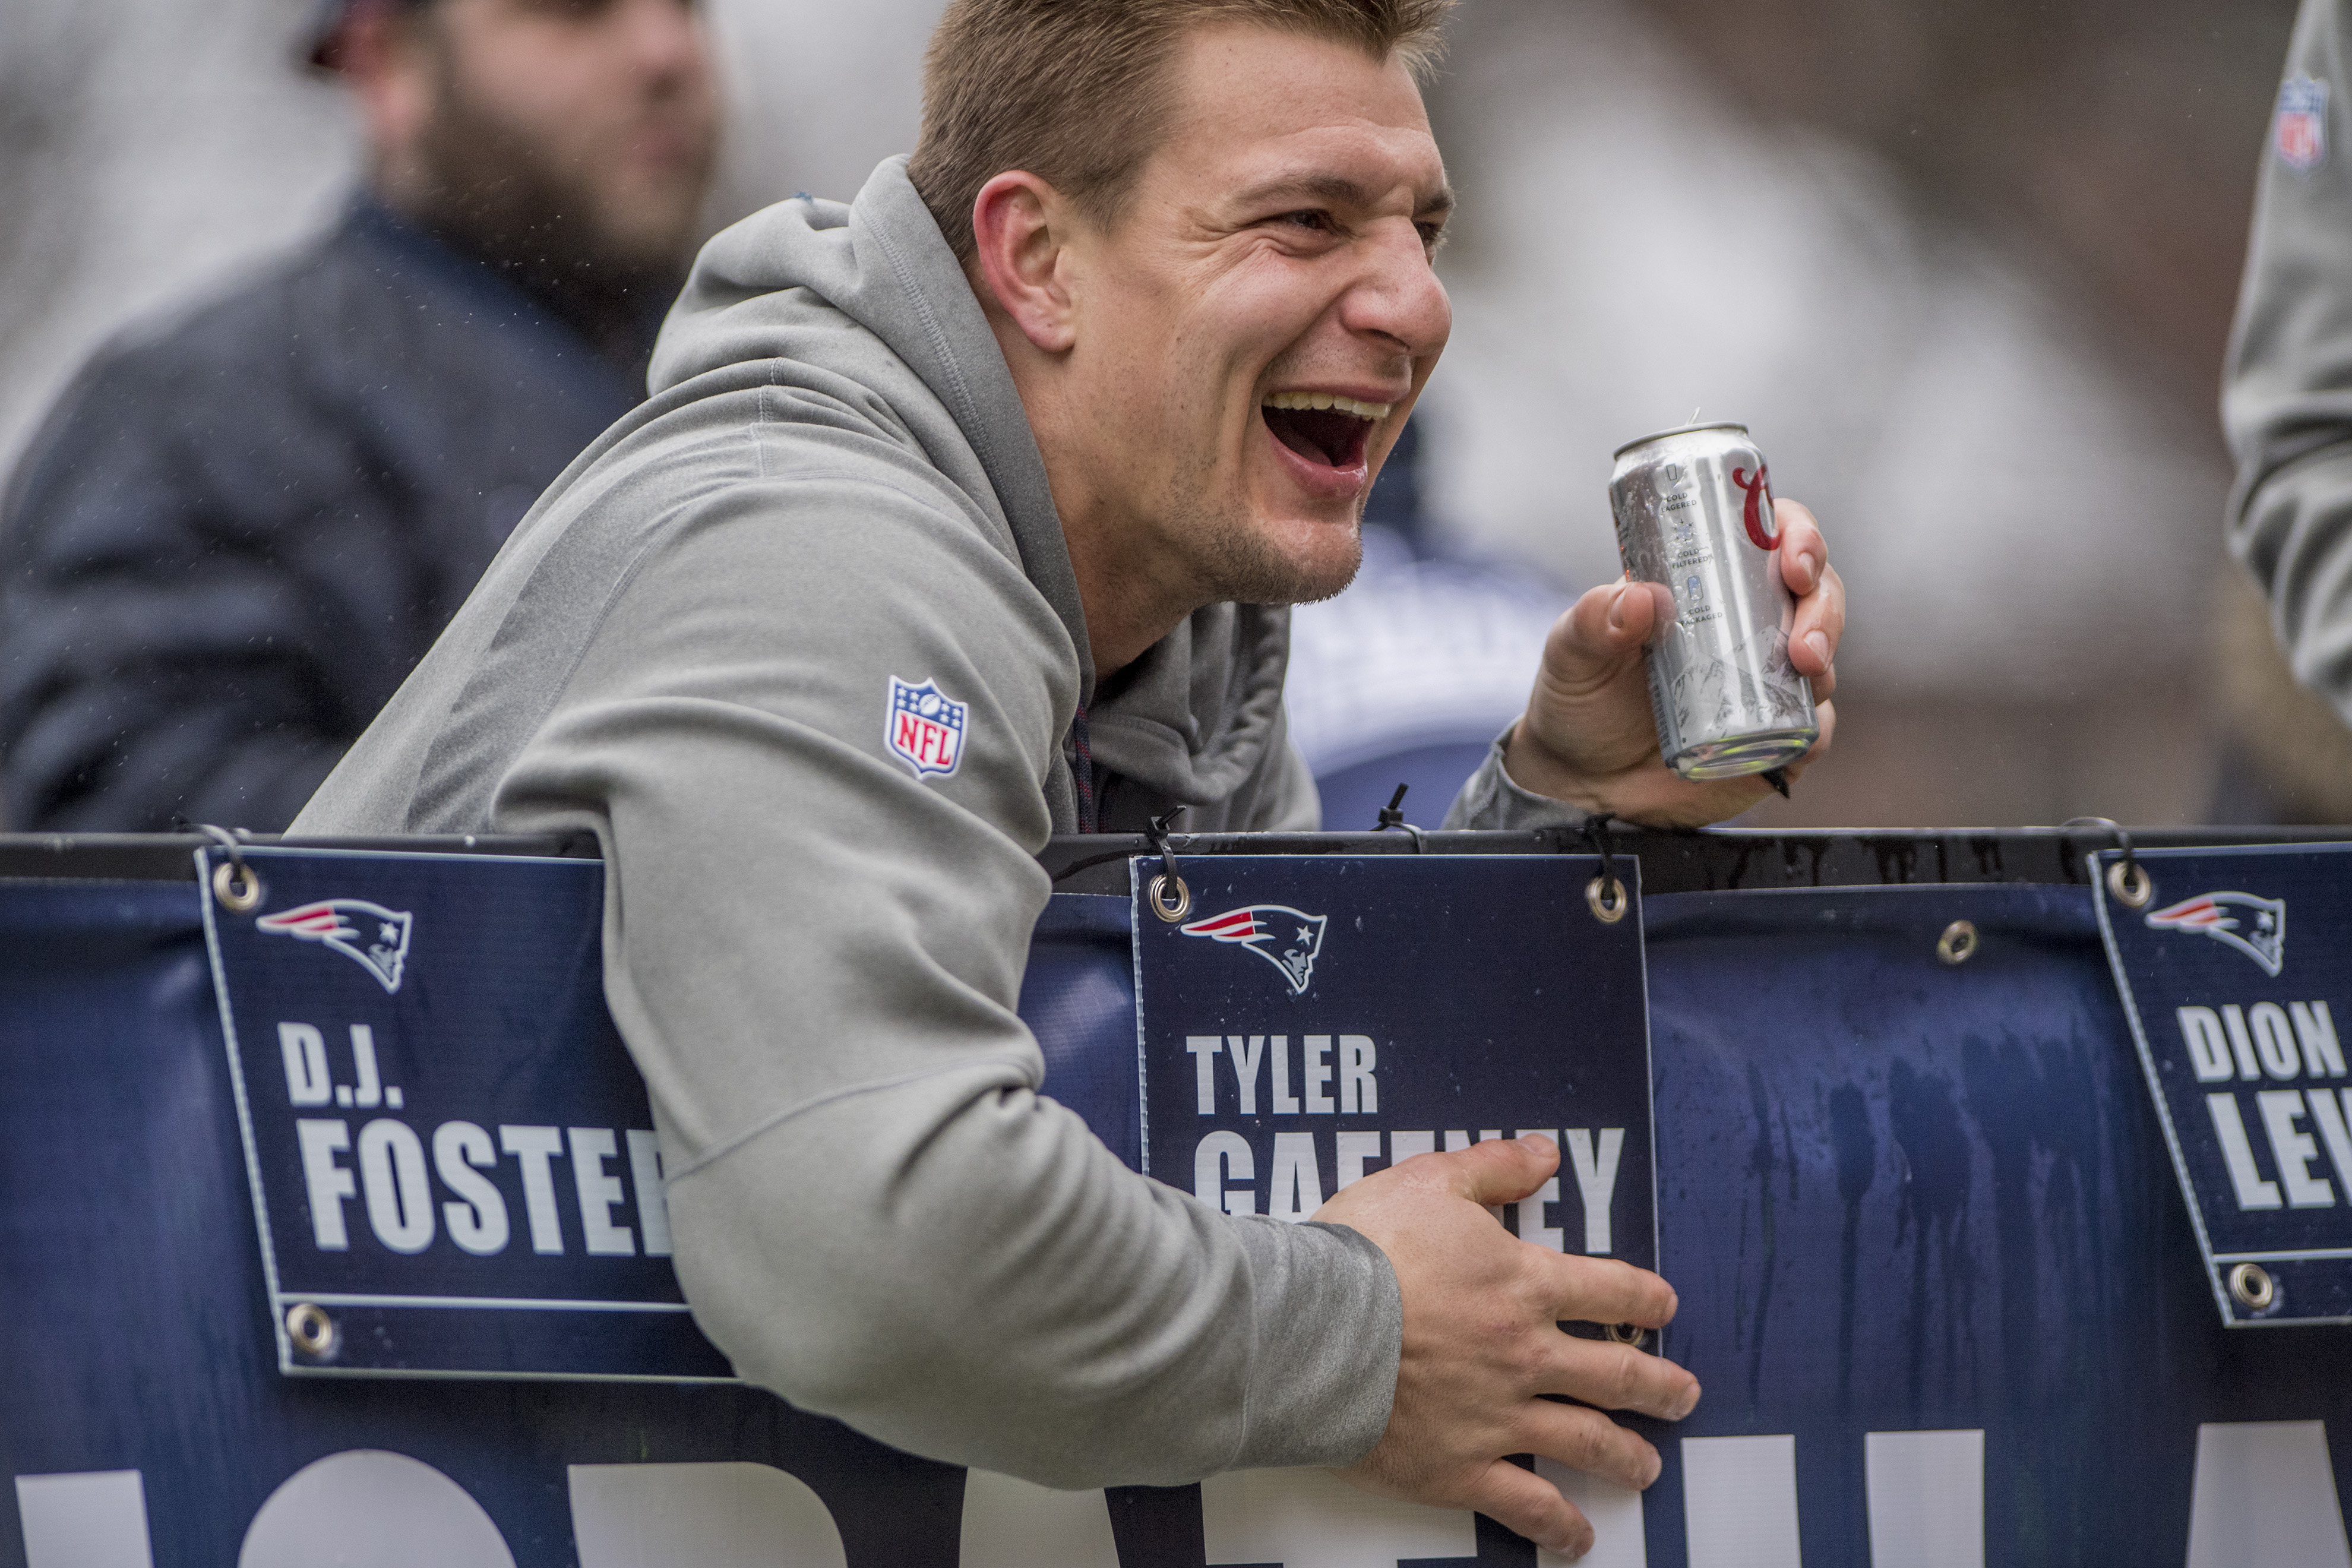 BOSTON, MA - FEBRUARY 07: Rob Gronkowski of the New England Patriots drinks beer during the Super Bowl victory parade on February 7, 2017 in Boston, Massachusetts. The Patriots defeated the Atlanta Falcons 34-28 in overtime in Super Bowl 51. (Photo by Billie Weiss/Getty Images)